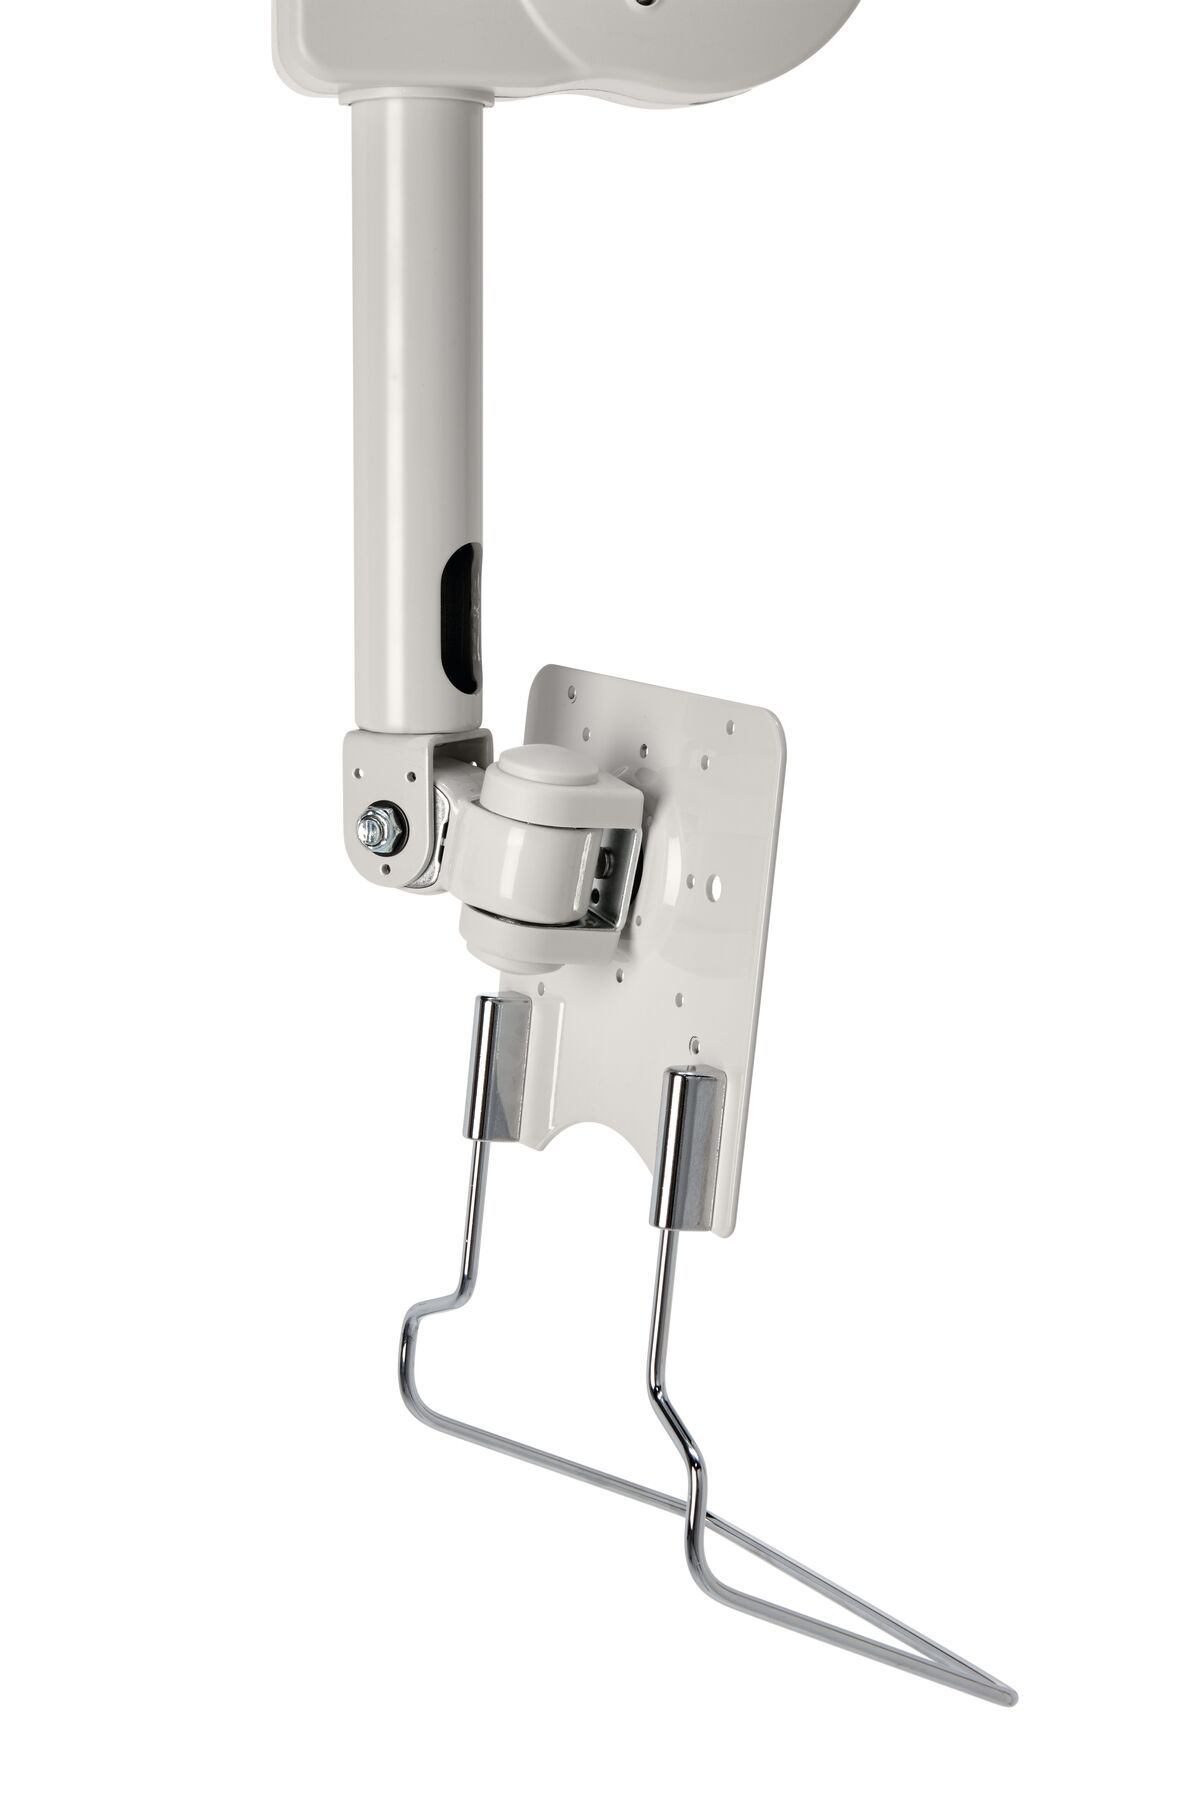 Vogel's PMW 7038 Medical wall mount - Detail